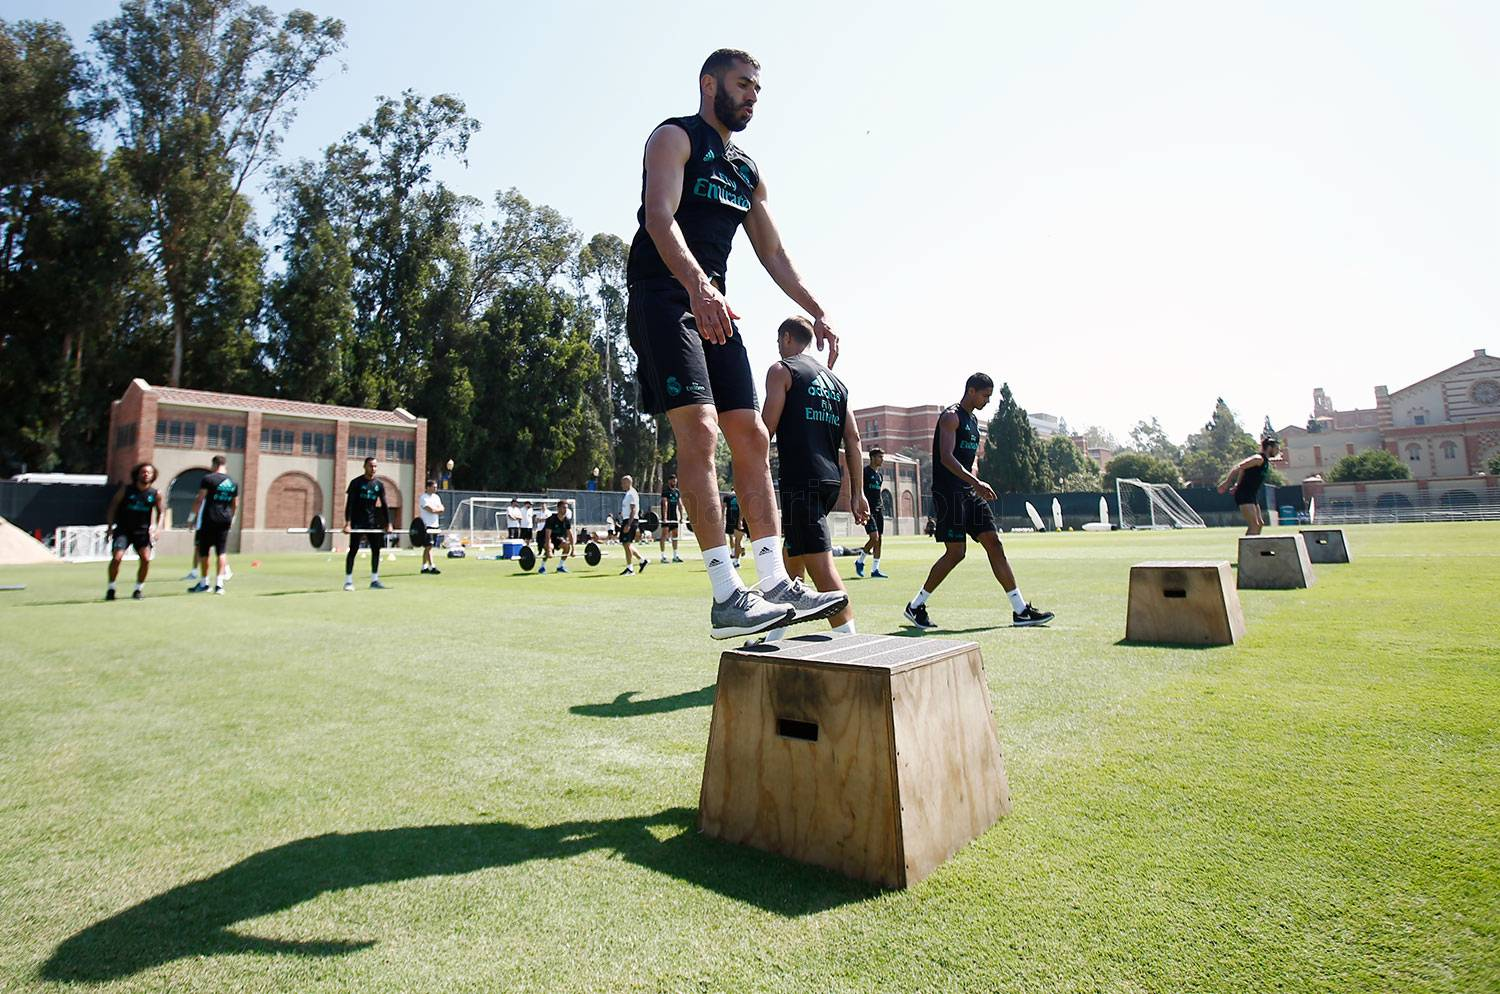 Real Madrid - Entrenamiento del Real Madrid en UCLA - 18-07-2017